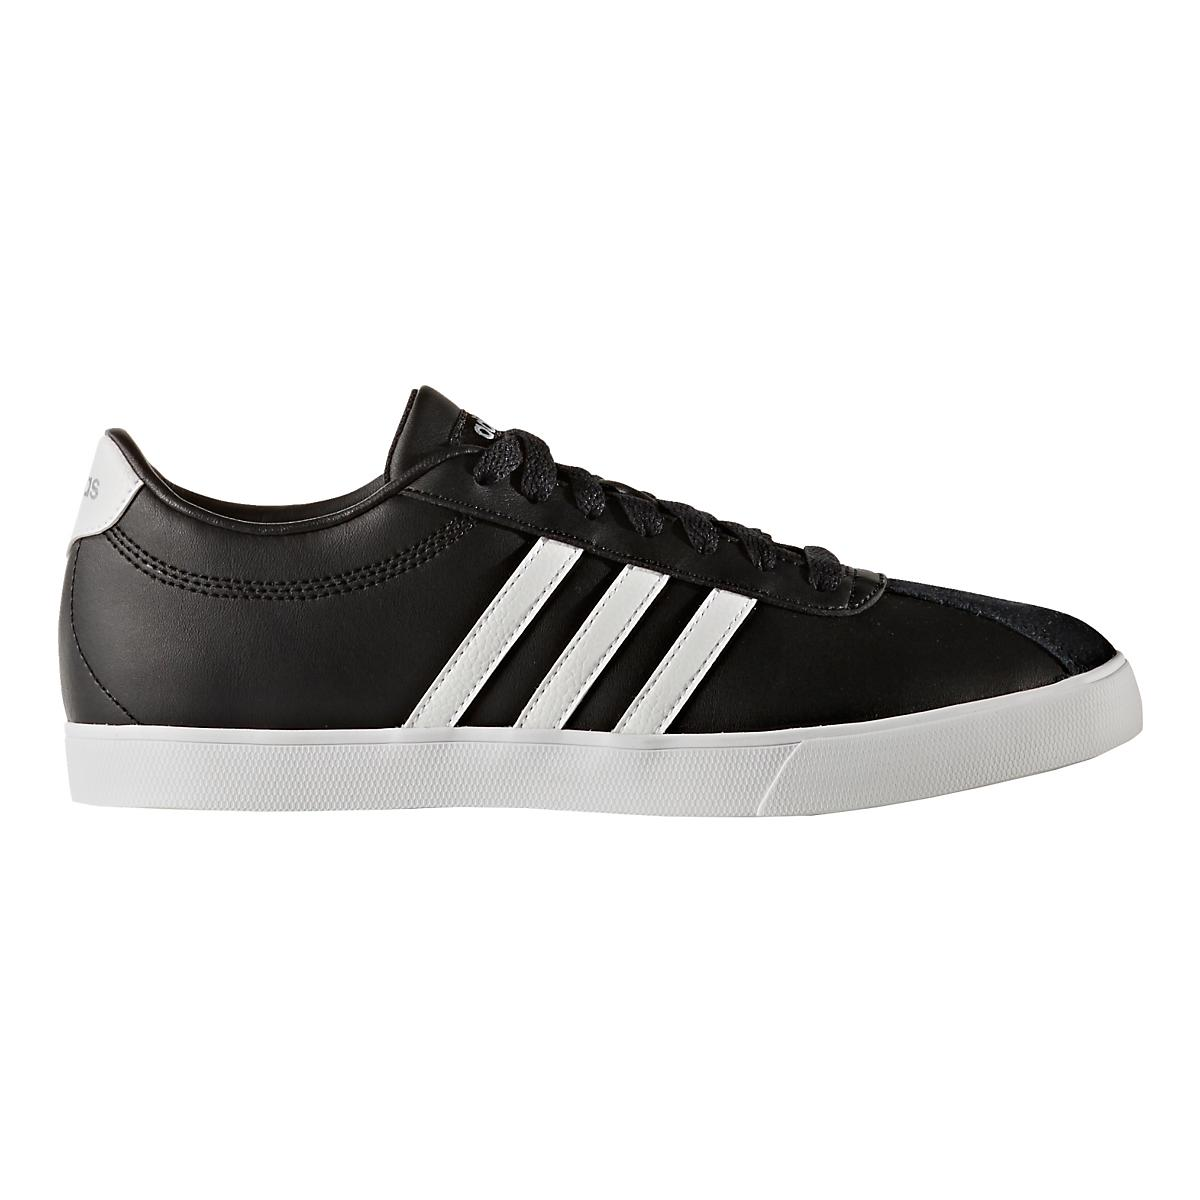 adidas NEO Daily K Sneaker (Little Kid/Big Kid) Loafers